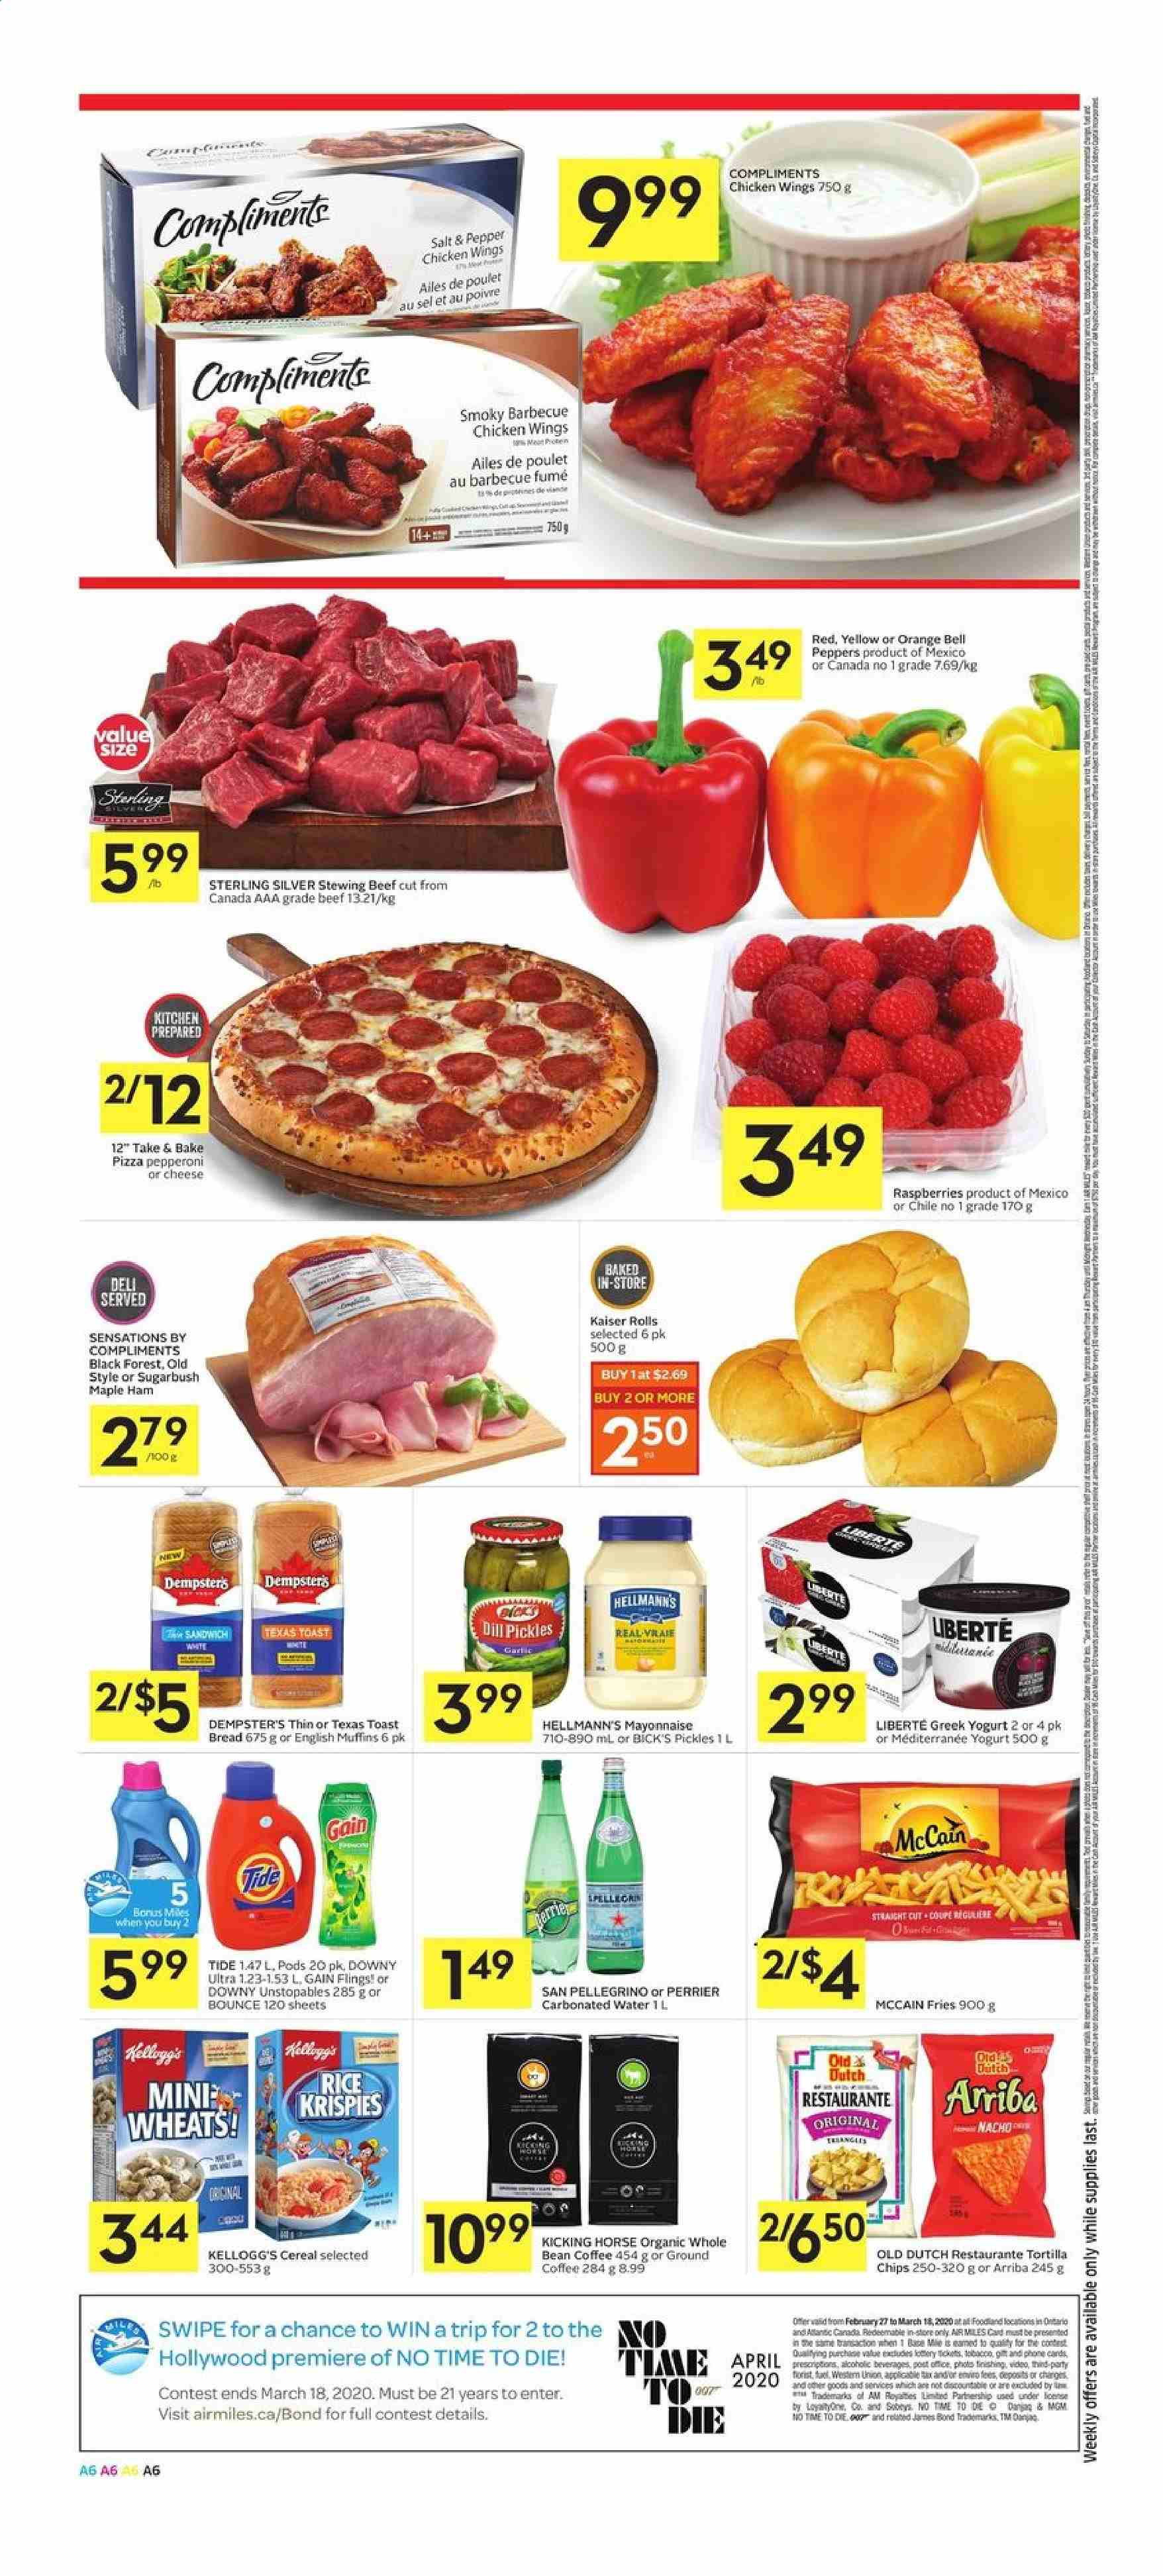 Foodland Flyer  - February 27, 2020 - March 04, 2020. Page 6.